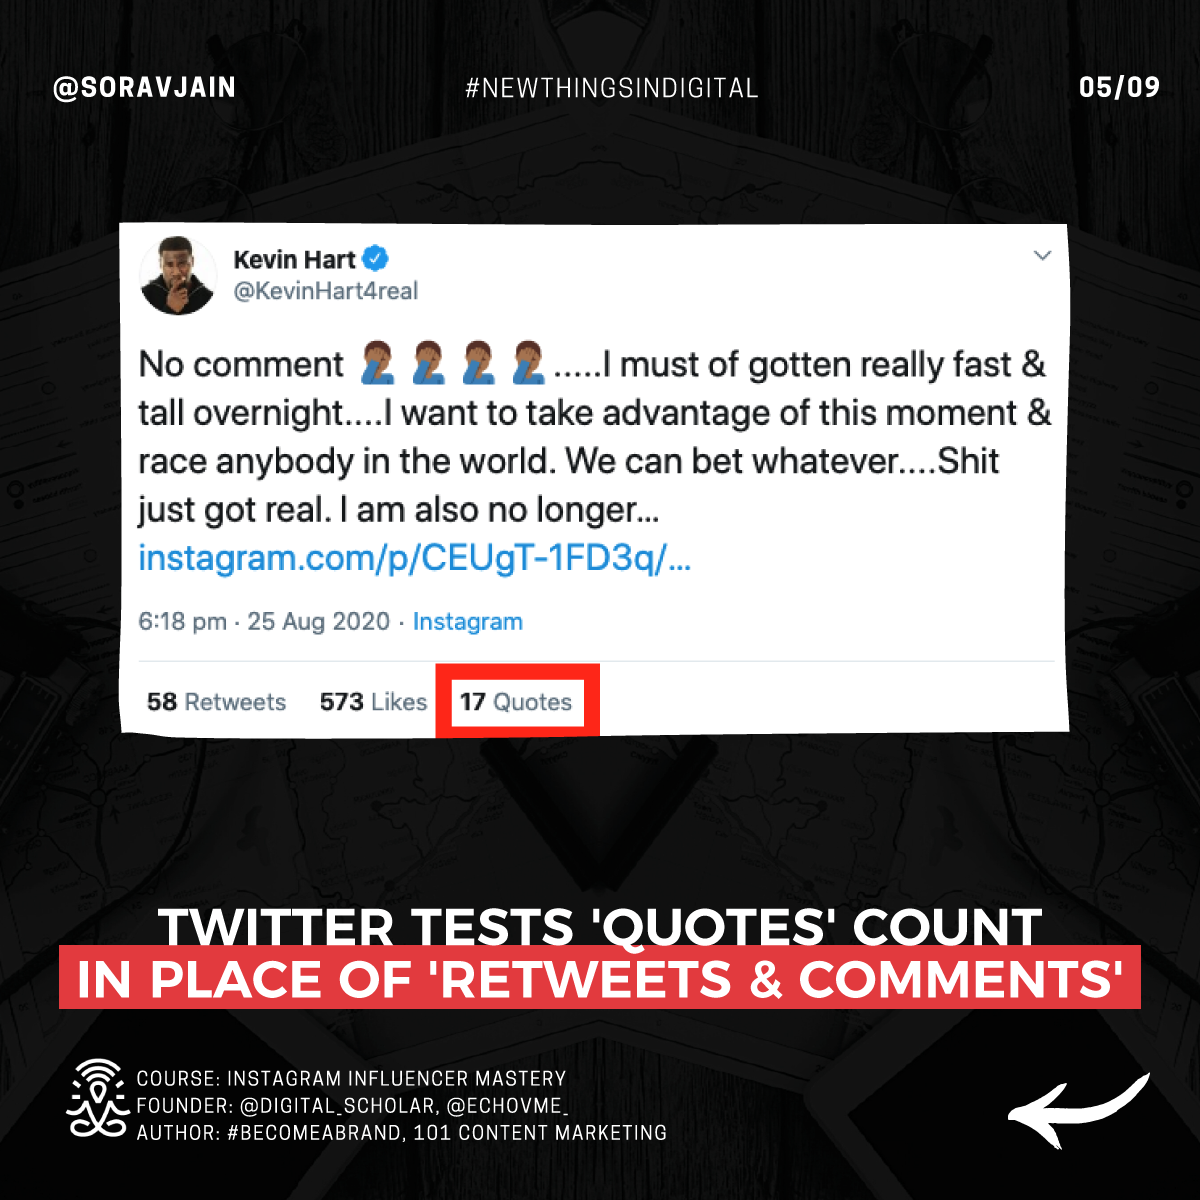 Twitter tests Quotes count in place of Retweets and Comments